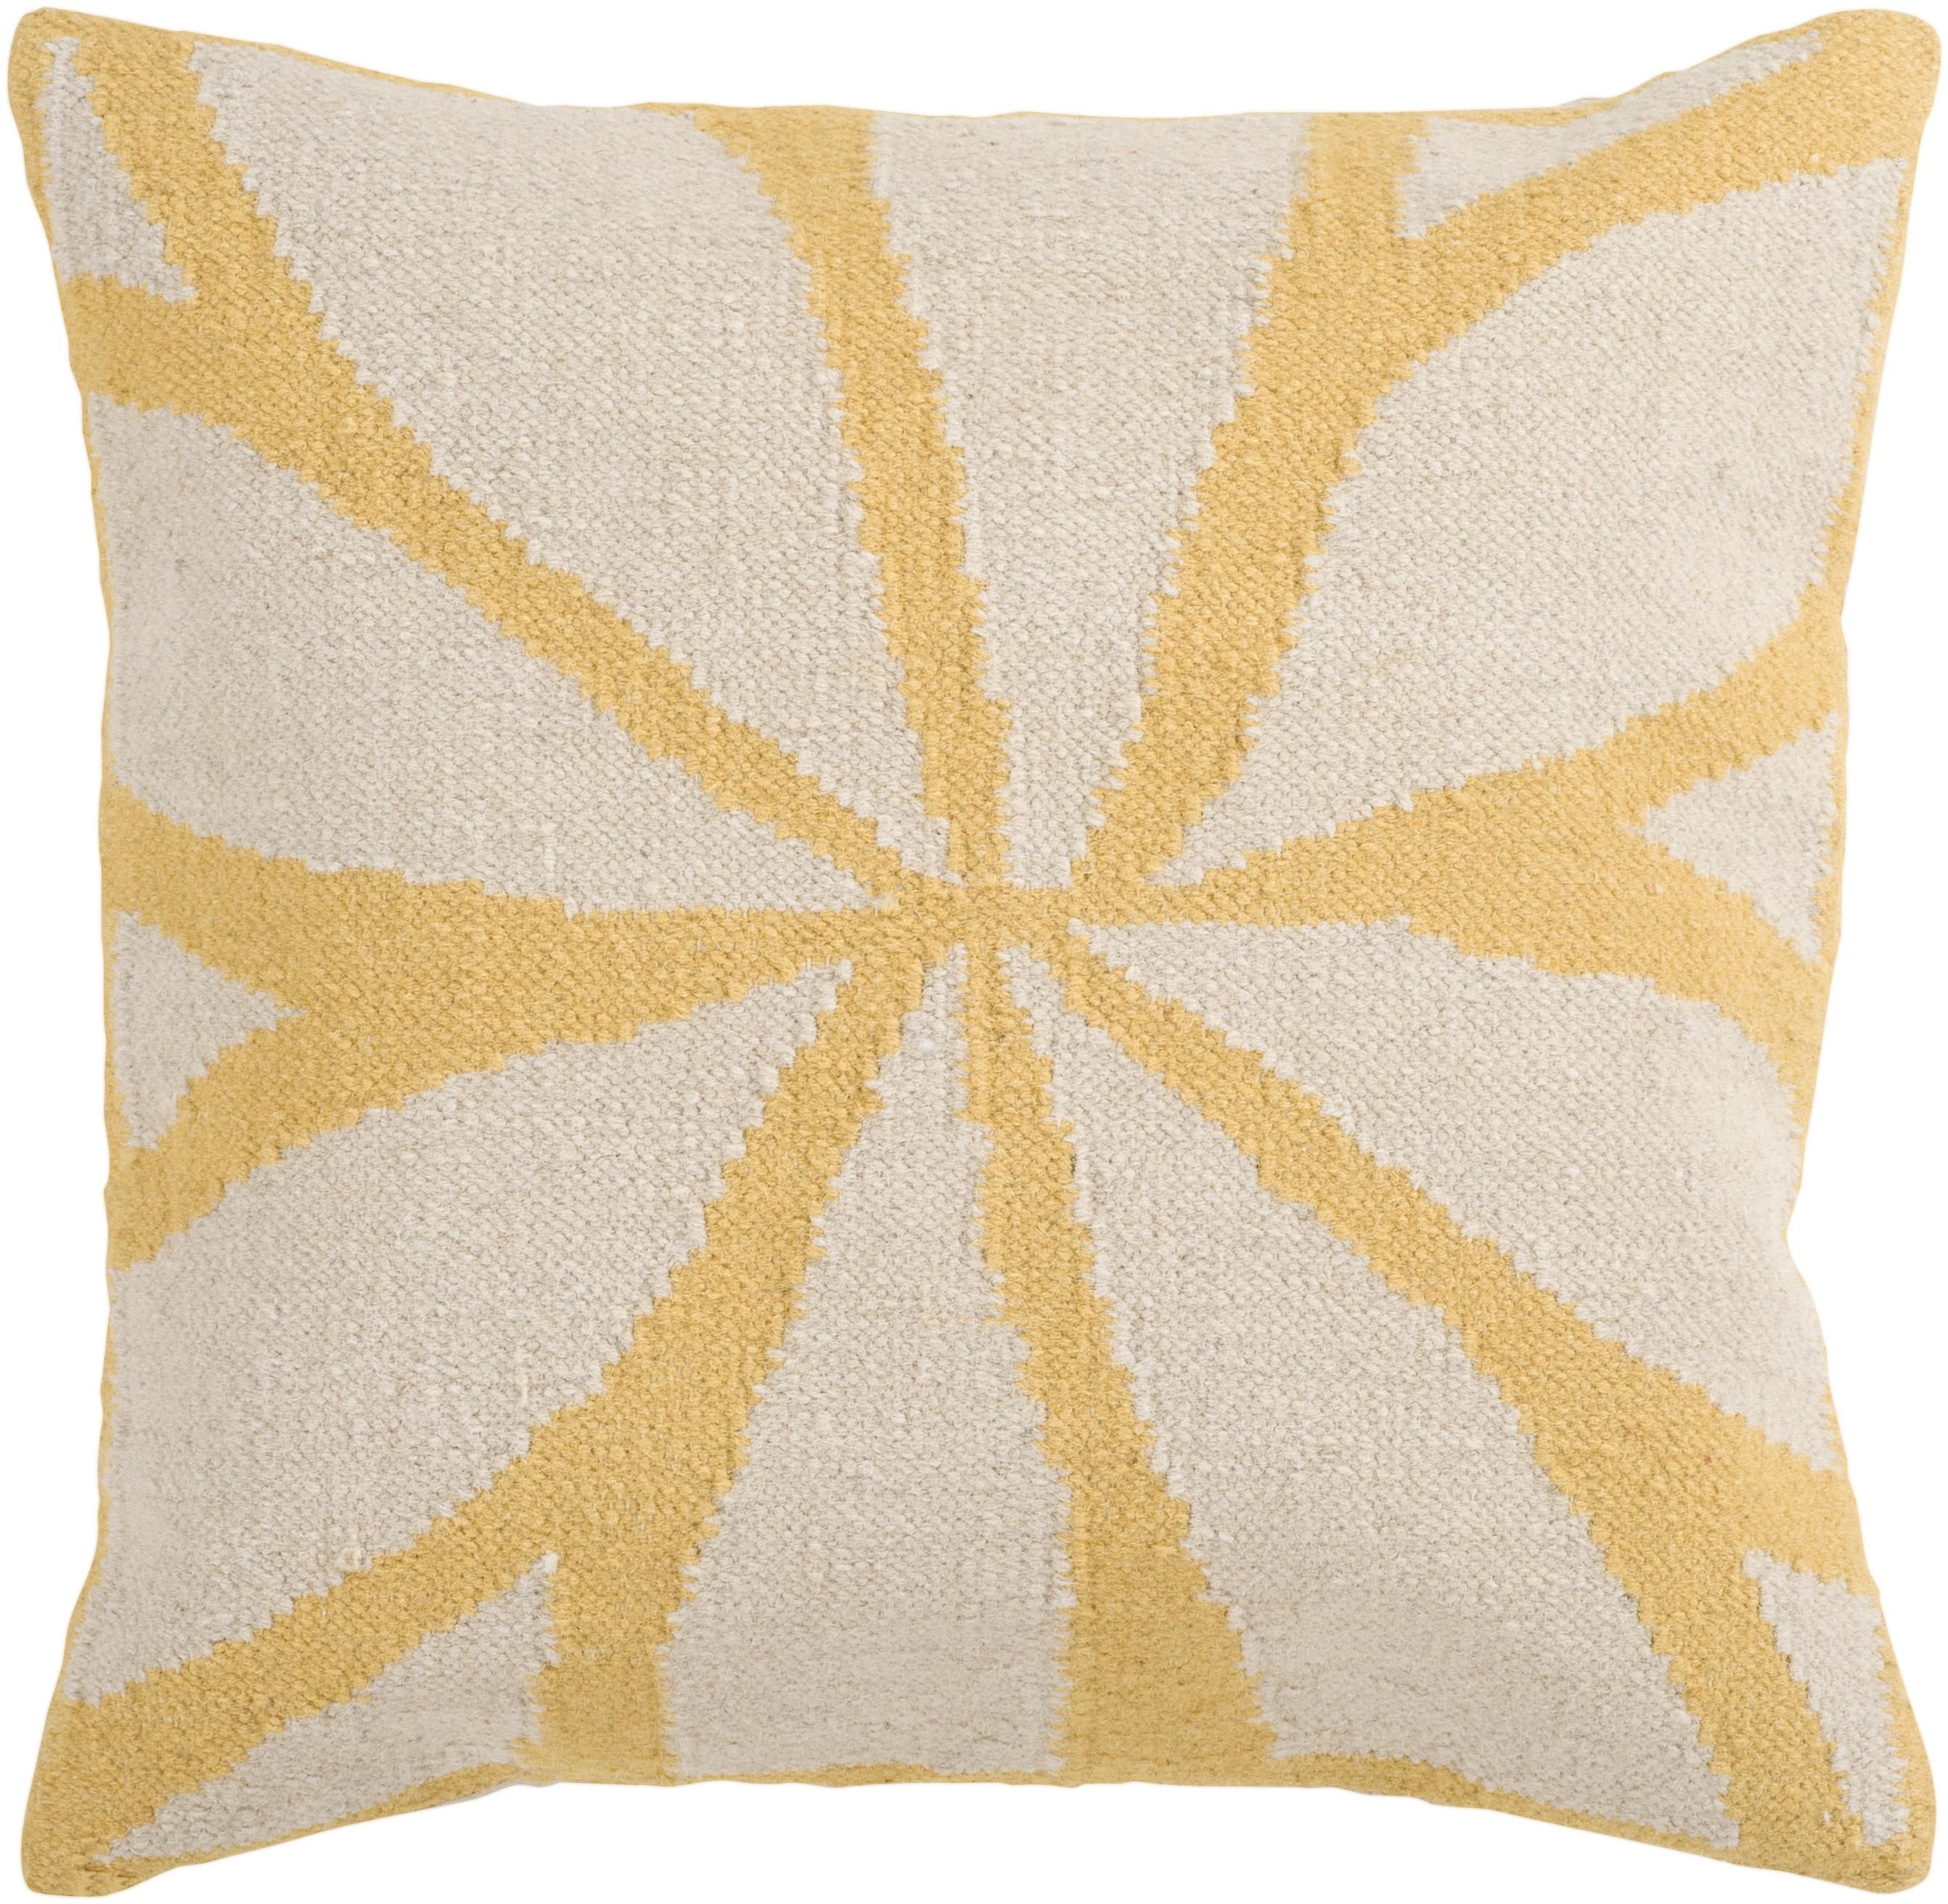 "Surya Pillows 22"" x 22"" Pillow - Item Number: FA012-2222P"